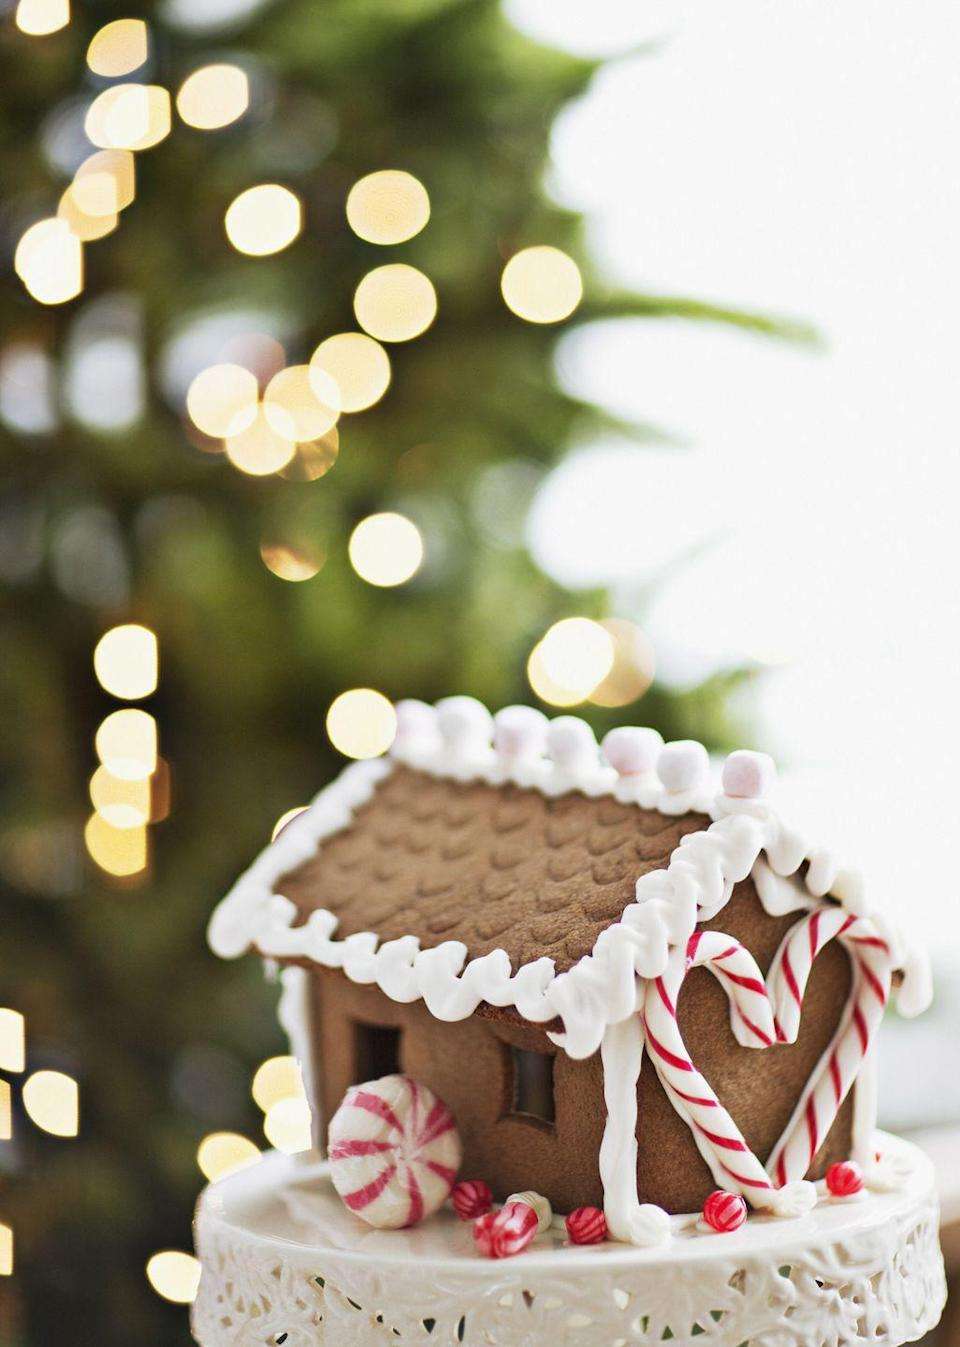 """<p>Add a nostalgic element to your party by setting out supplies to make gingerbread houses and hosting an all-in-good-fun competition to see who can construct the sweetest abode. (Award an oven mitt to the winner!) Keep it simple by stocking up on <a href=""""https://go.redirectingat.com?id=74968X1596630&url=http%3A%2F%2Fwww.worldmarket.com%2Fcategory%2Ffood-and-drink%2Ffood%2Fbaking-products.do%3Ftemplate%3DPLA%26plfsku%3D514148%26camp%3Dppc%253AGooglePLA%253Anone%253A142155926699custom3bestseller%2526custom4%2526custom0%26adpos%3D1o1%26creative%3D50632136459%26device%3Dc%26network%3Dg%26gclid%3DCOjYrseRsNACFctMDQodbuoAjA&sref=https%3A%2F%2Fwww.countryliving.com%2Fdiy-crafts%2Fhow-to%2Fg2218%2Fchristmas-party-ideas%2F"""" rel=""""nofollow noopener"""" target=""""_blank"""" data-ylk=""""slk:affordable gingerbread kits"""" class=""""link rapid-noclick-resp"""">affordable gingerbread kits</a> that come ready to assemble—and be sure to choose an official judge!</p>"""